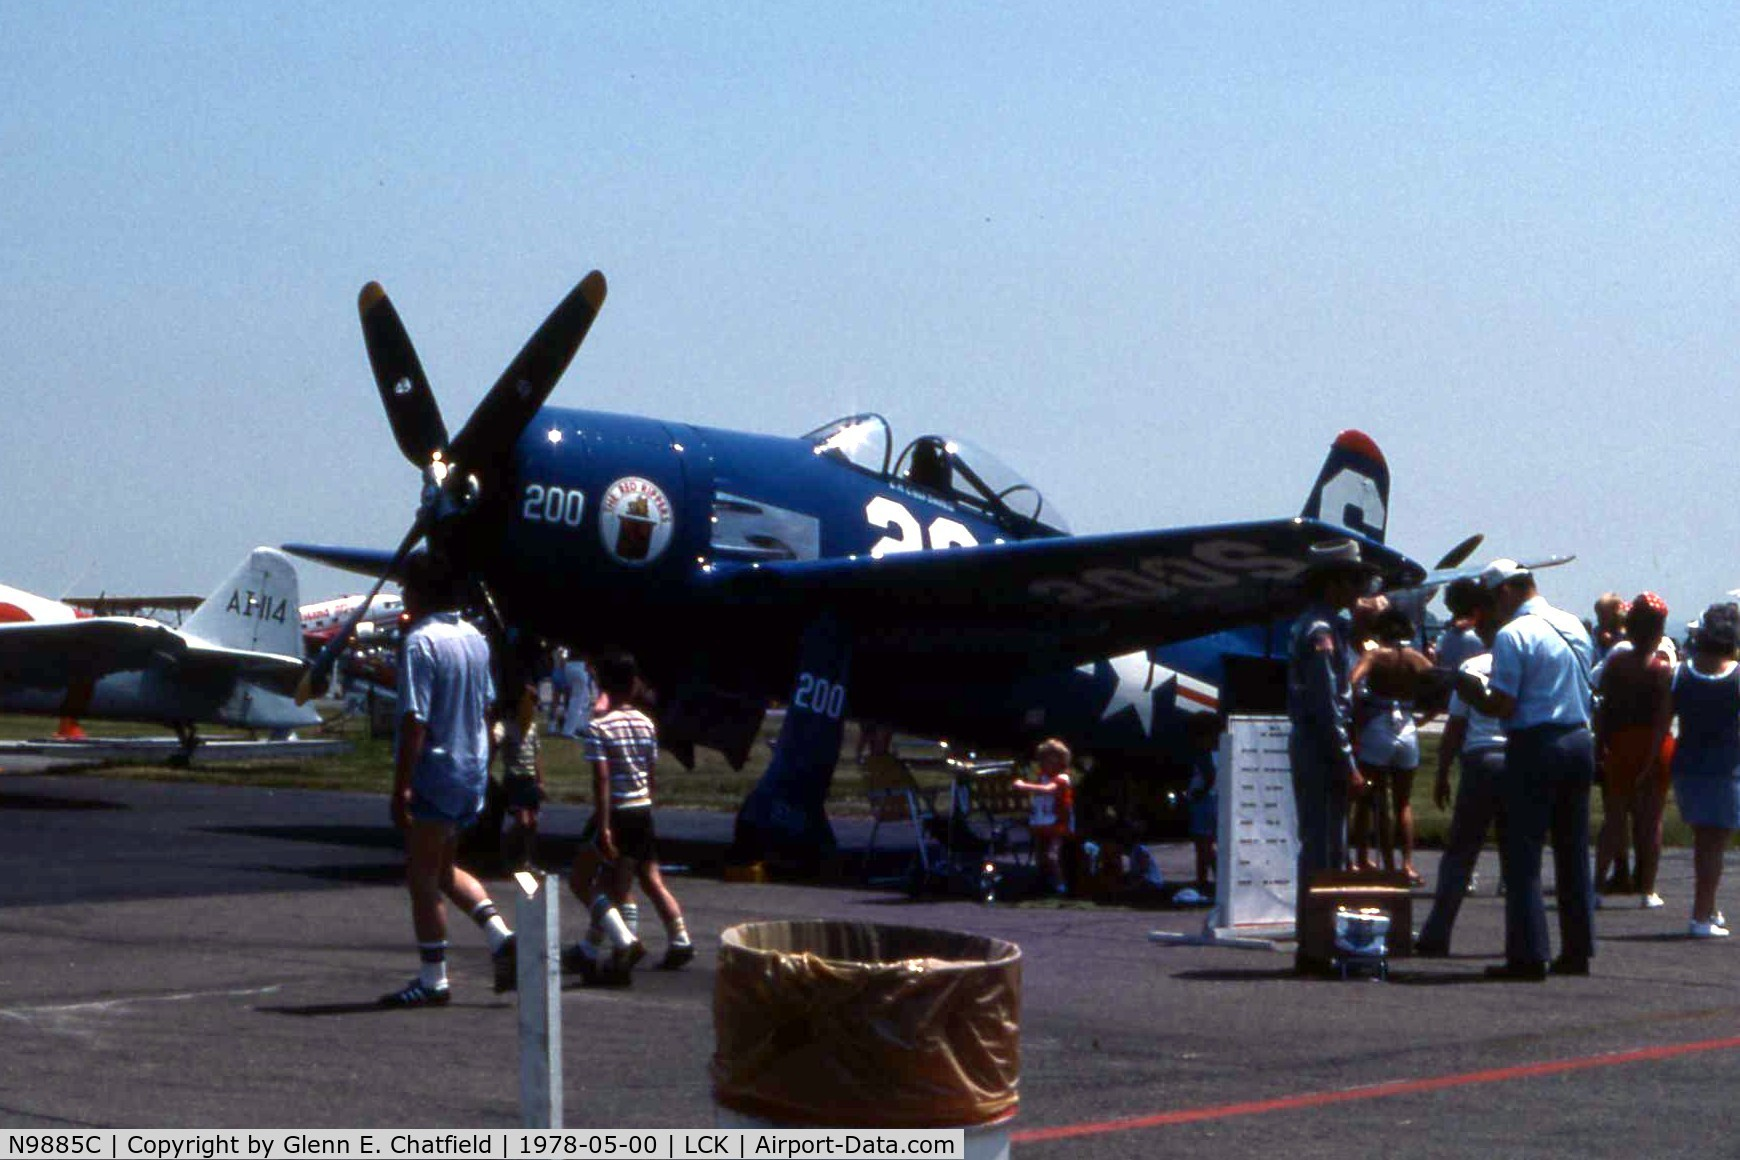 N9885C, Grumman F8F-2 (G58) Bearcat C/N D.1125, F8F-2 121751 at Rickenbacker AFB airshow